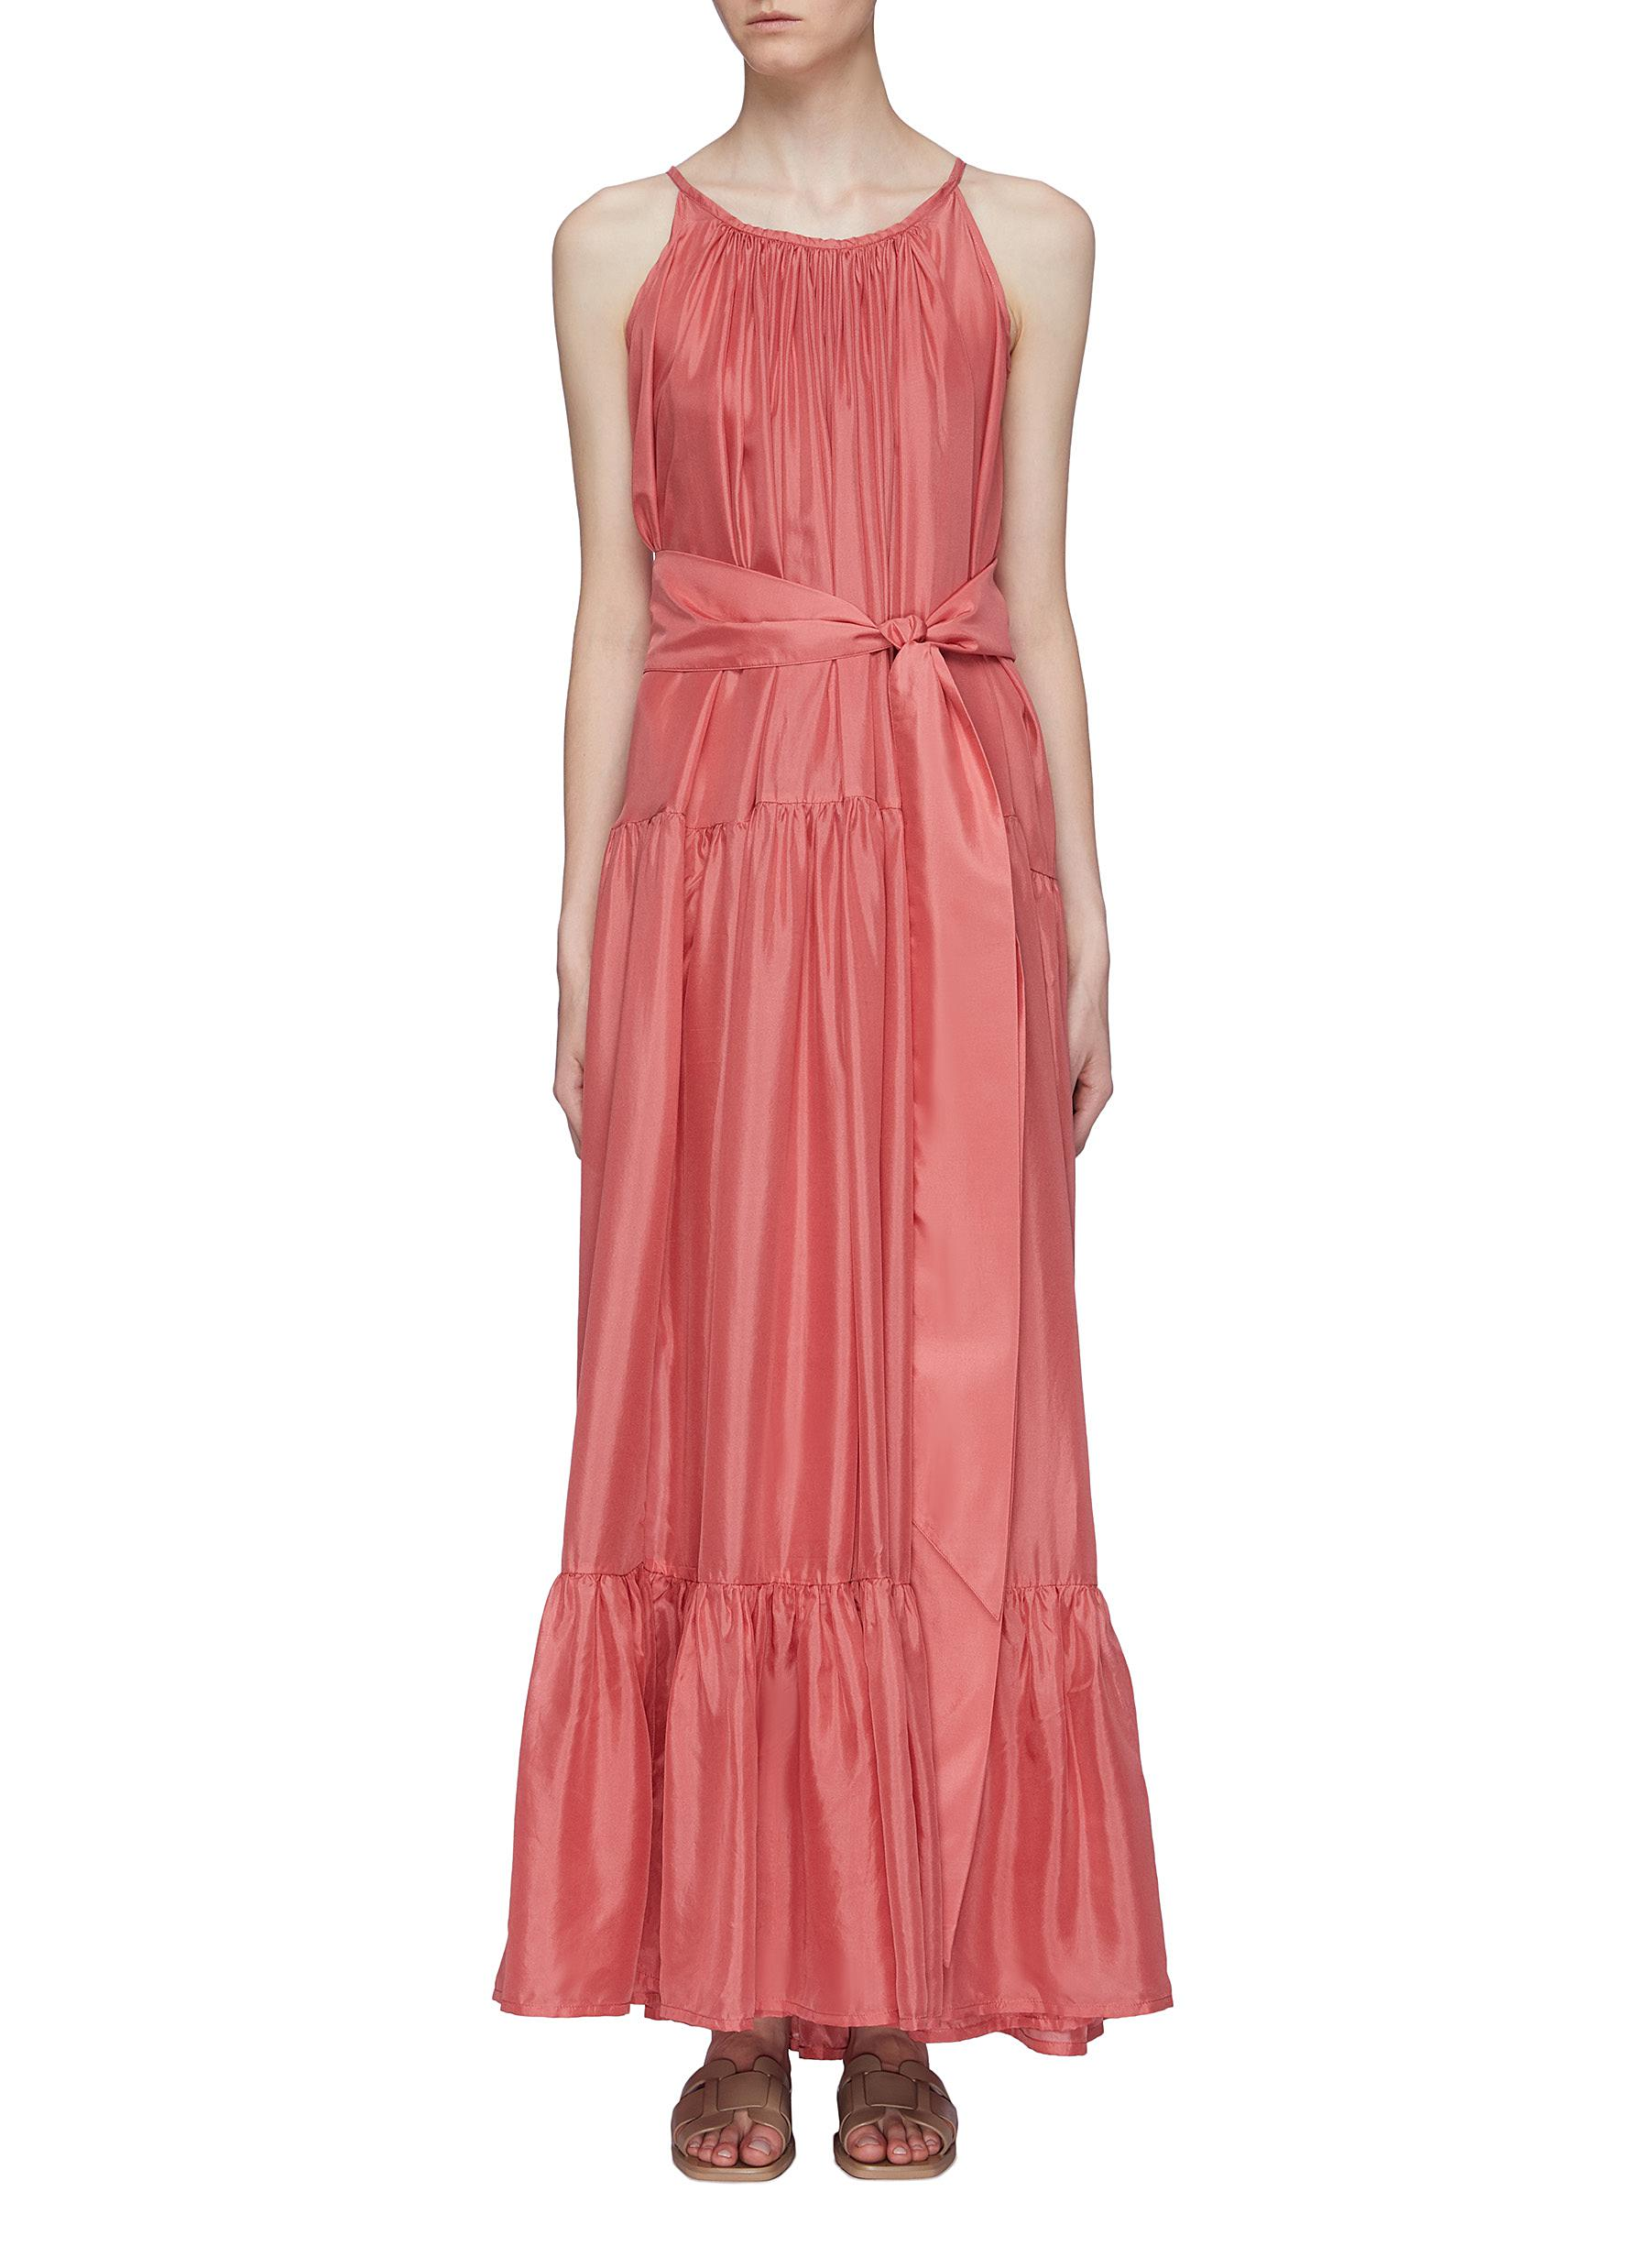 Genevieve belted ruched tiered maxi dress by Kalita